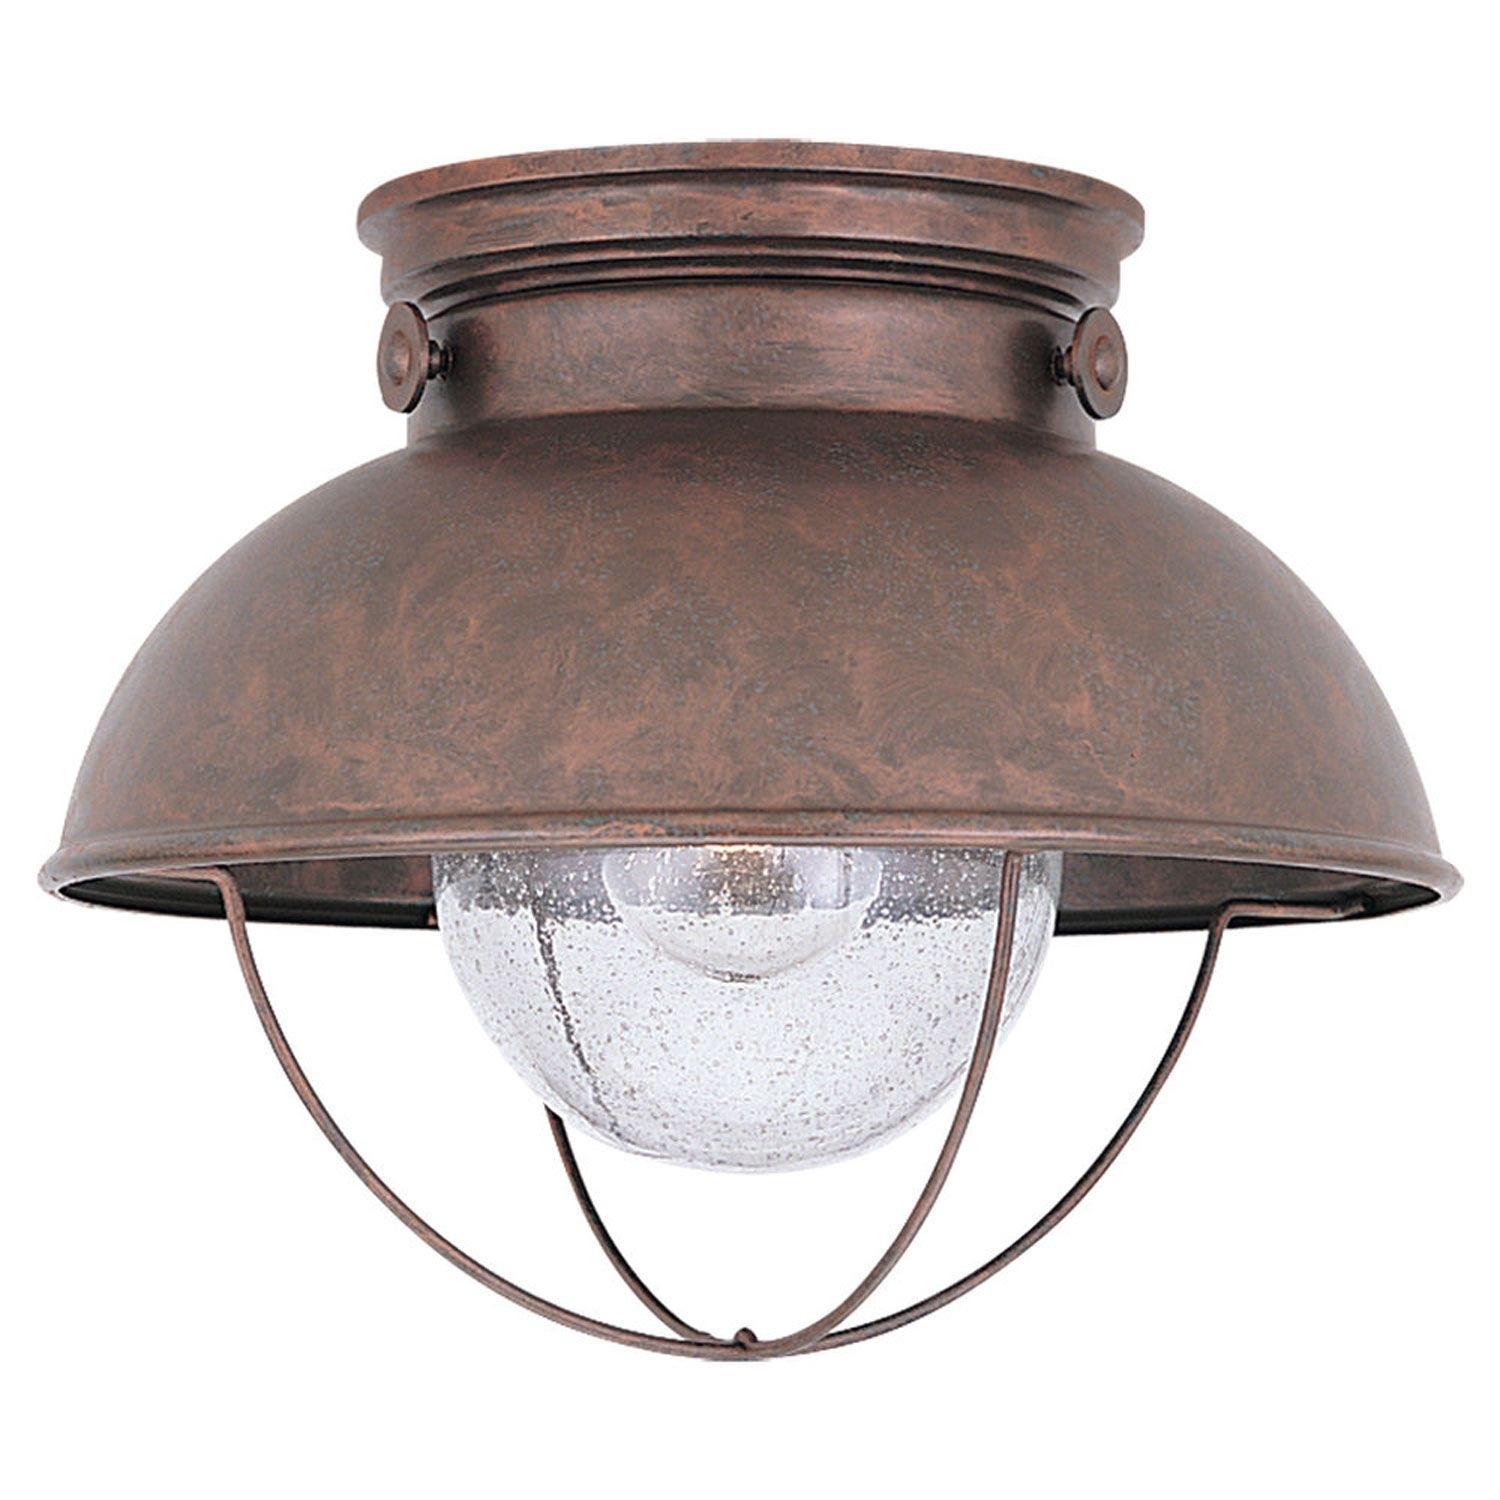 Sea Gull Lighting Sebring Weathered Copper Led Outdoor Ceiling Flush In Outdoor Porch Ceiling Lights (View 15 of 15)